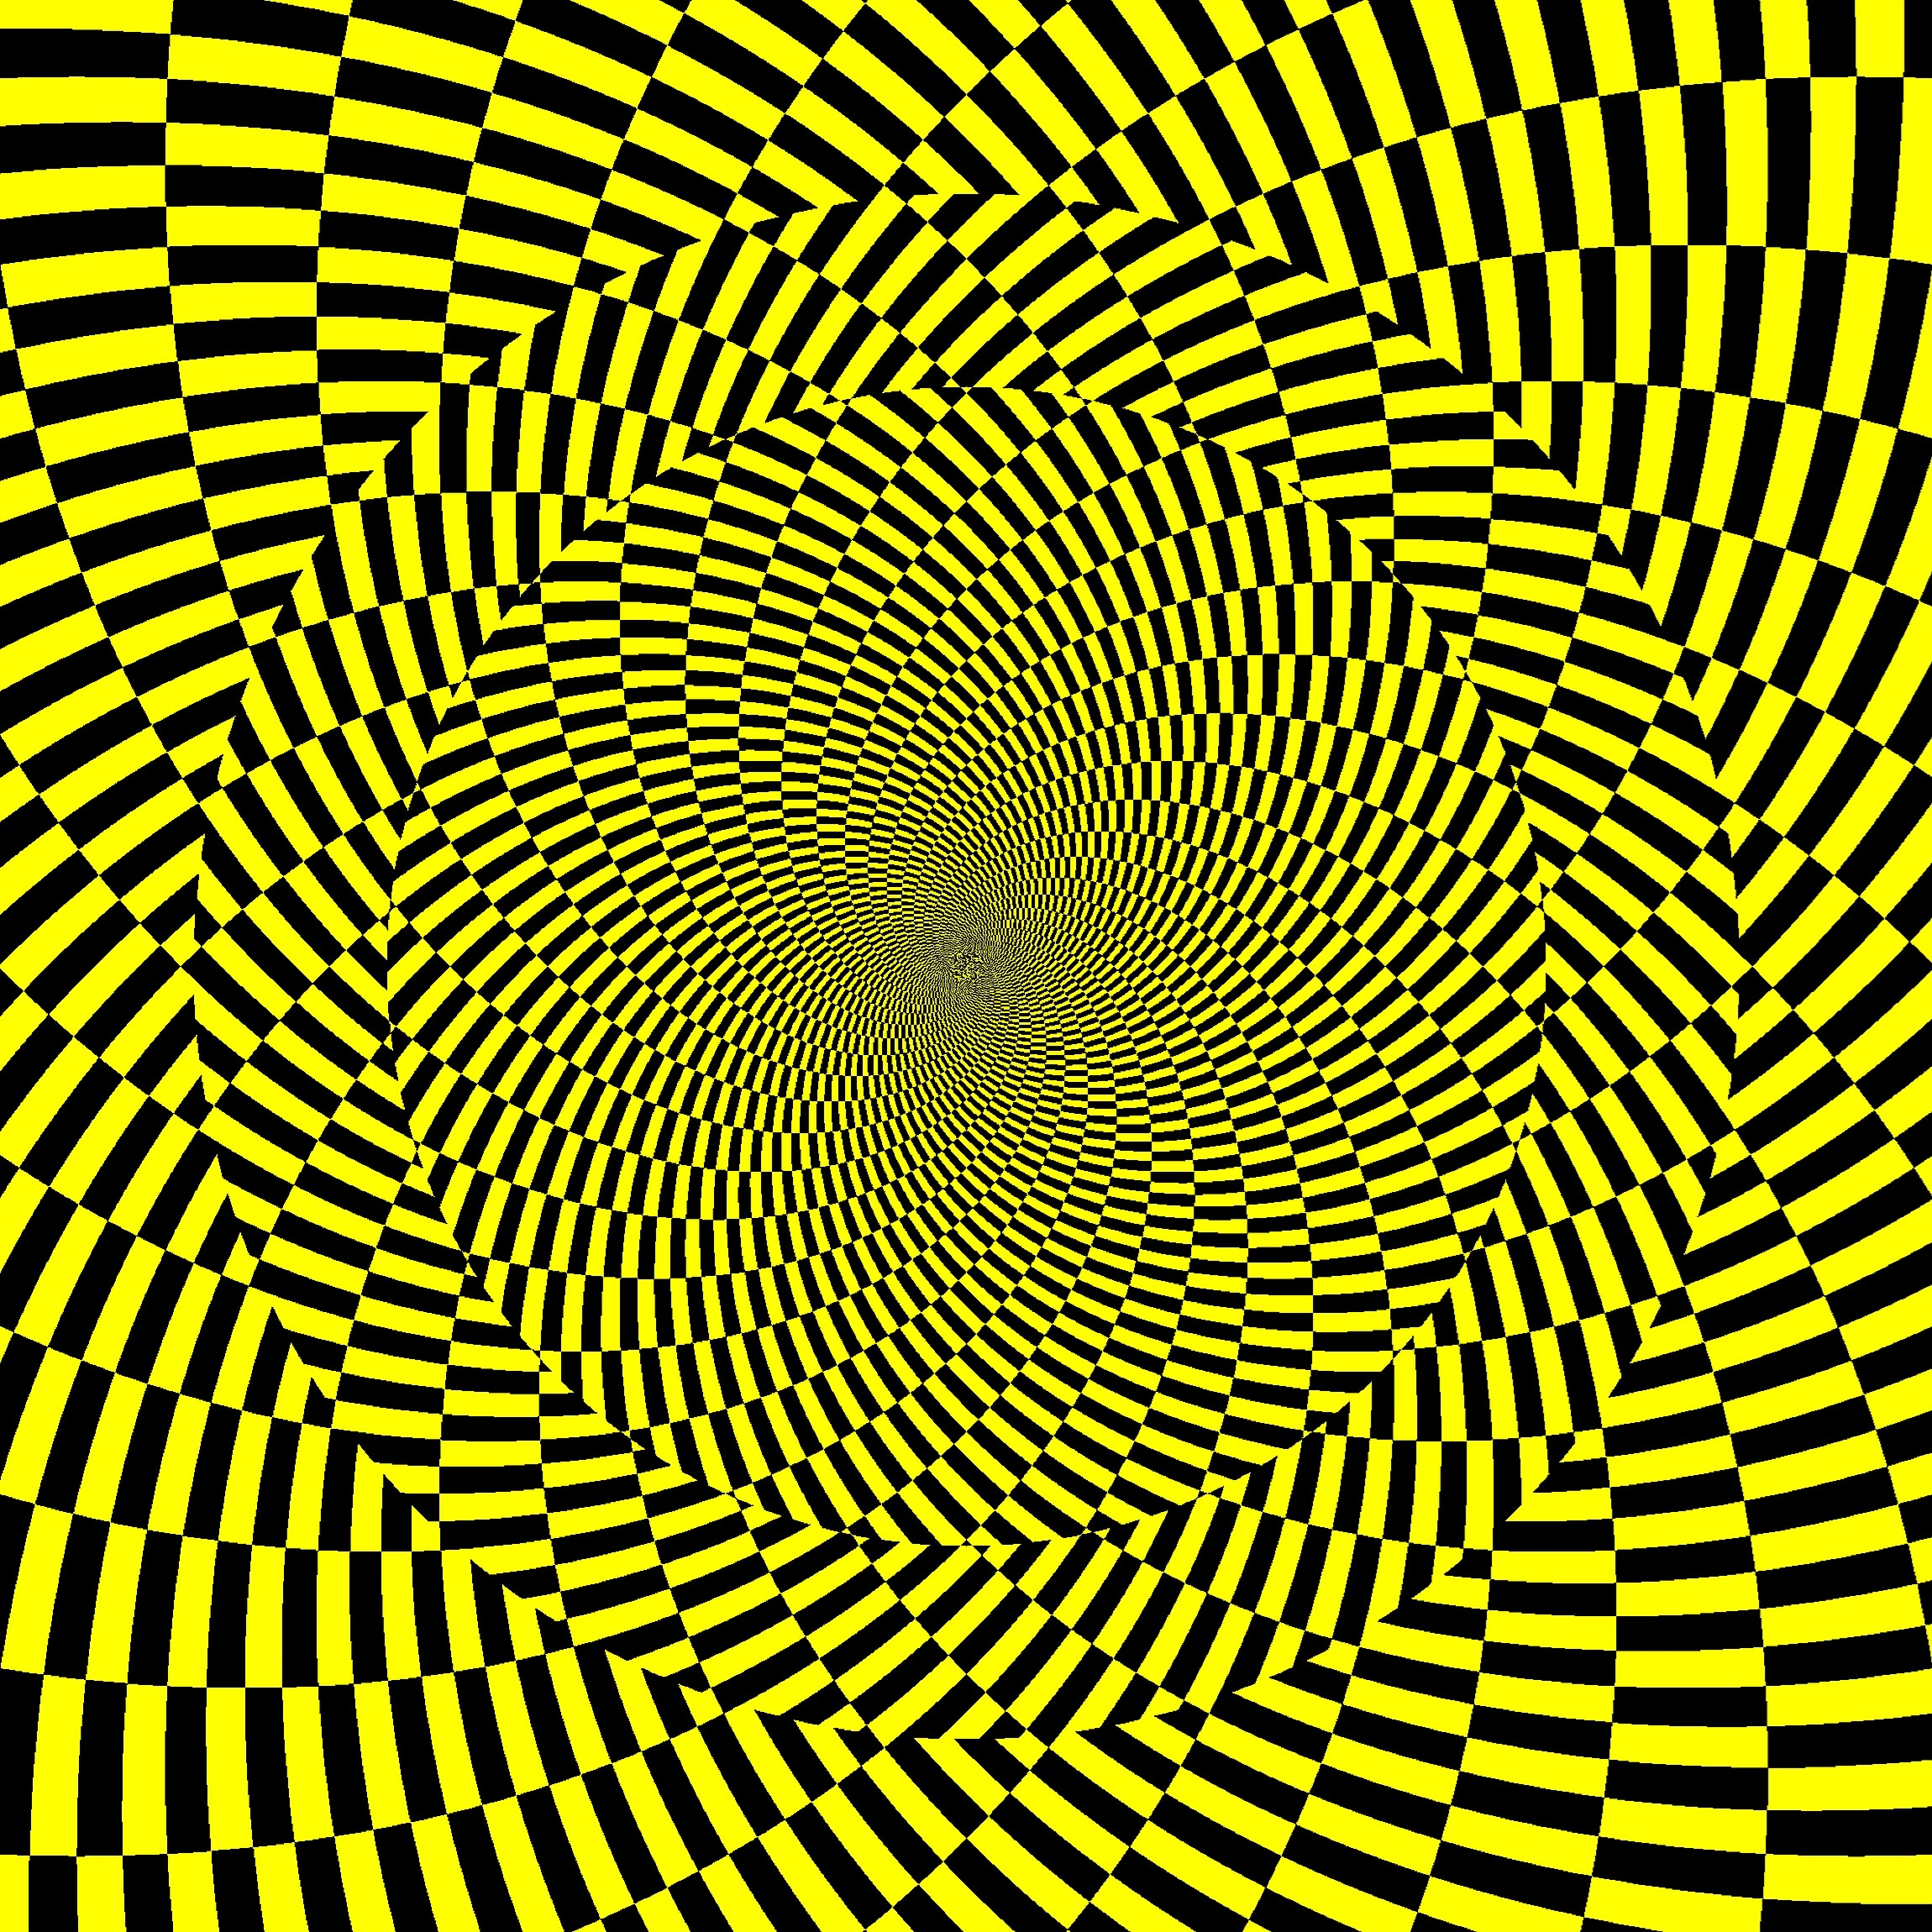 optical illusions pictures - 768×768